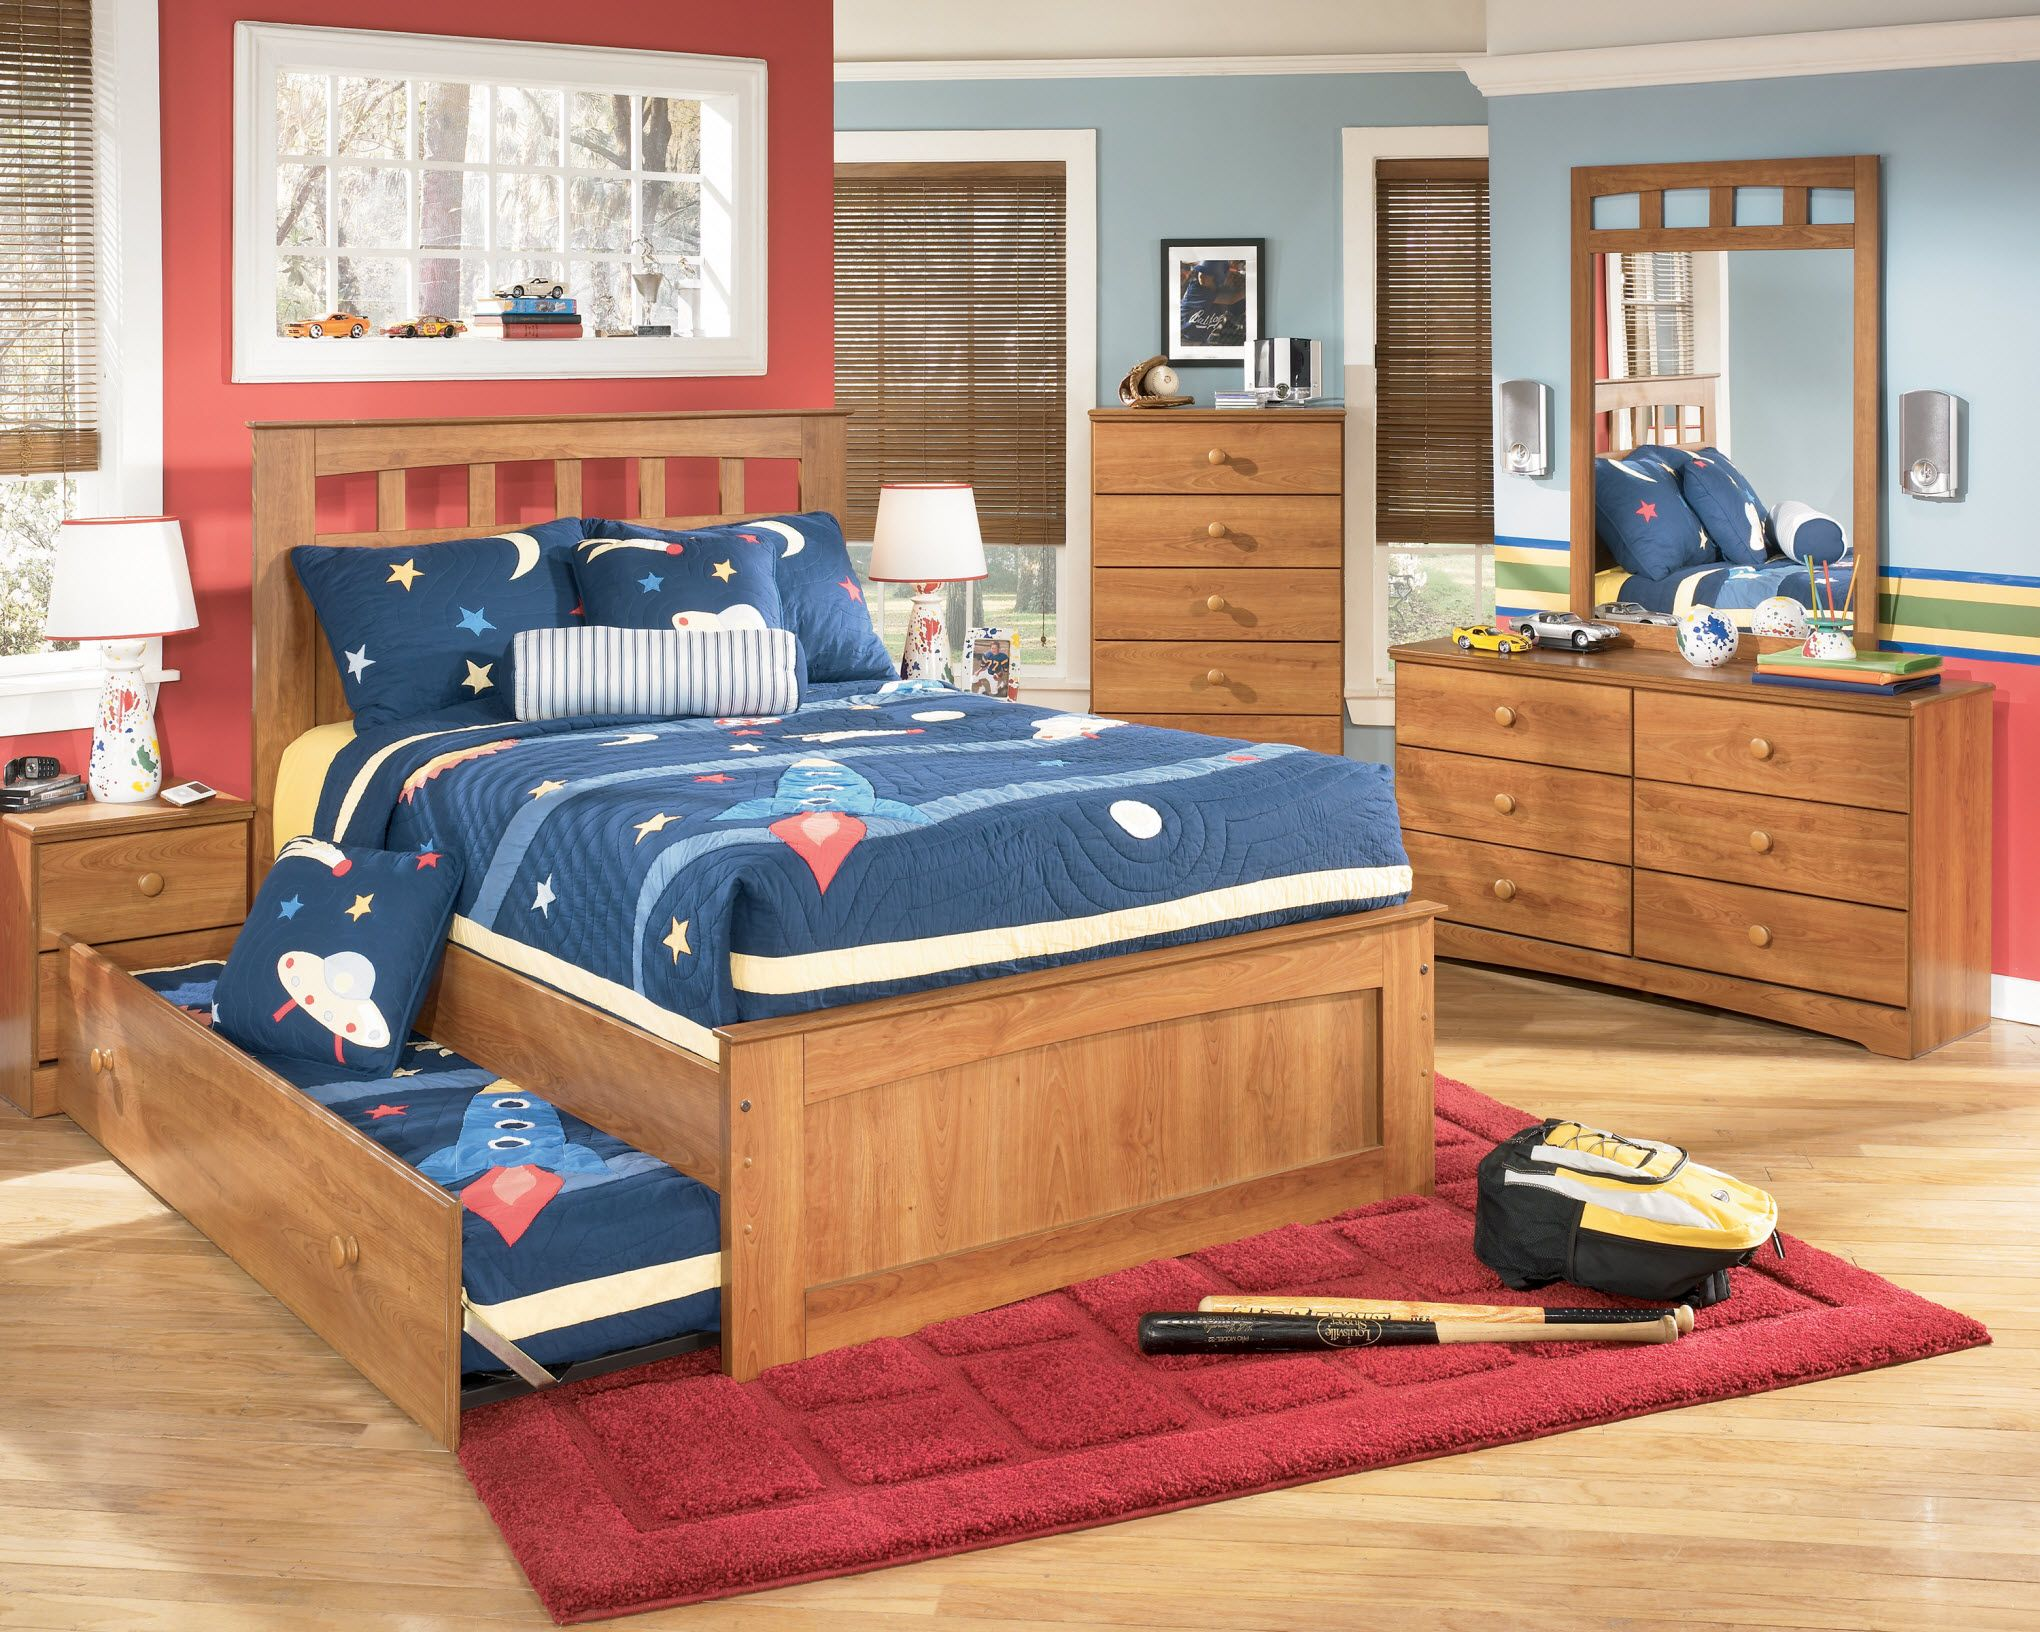 Bedroom Furniture Boys cool teenage boys bedroom furniture sets | bedroom | pinterest